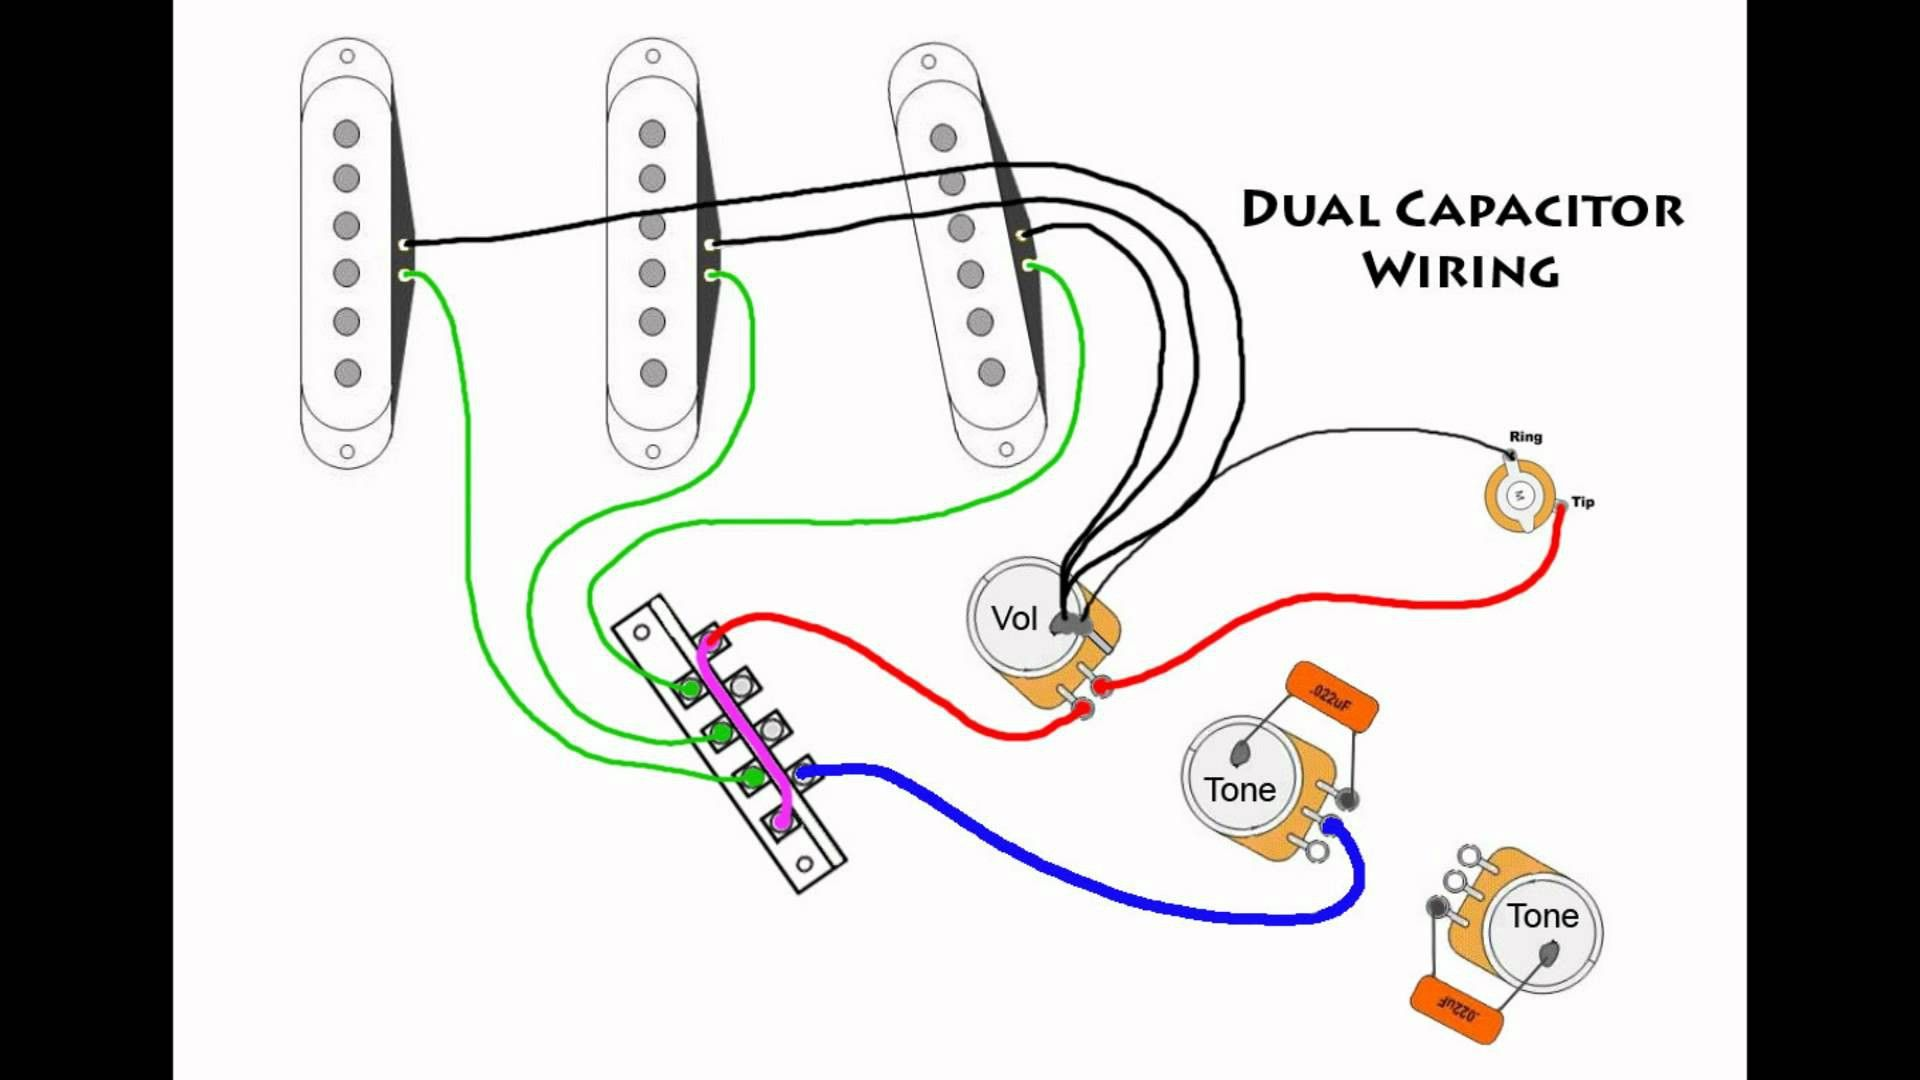 fender stratocaster wiring diagram best of strat throughout diagrams wiring diagram fender telecaster 3 way switch wiring diagram fender [ 1920 x 1080 Pixel ]